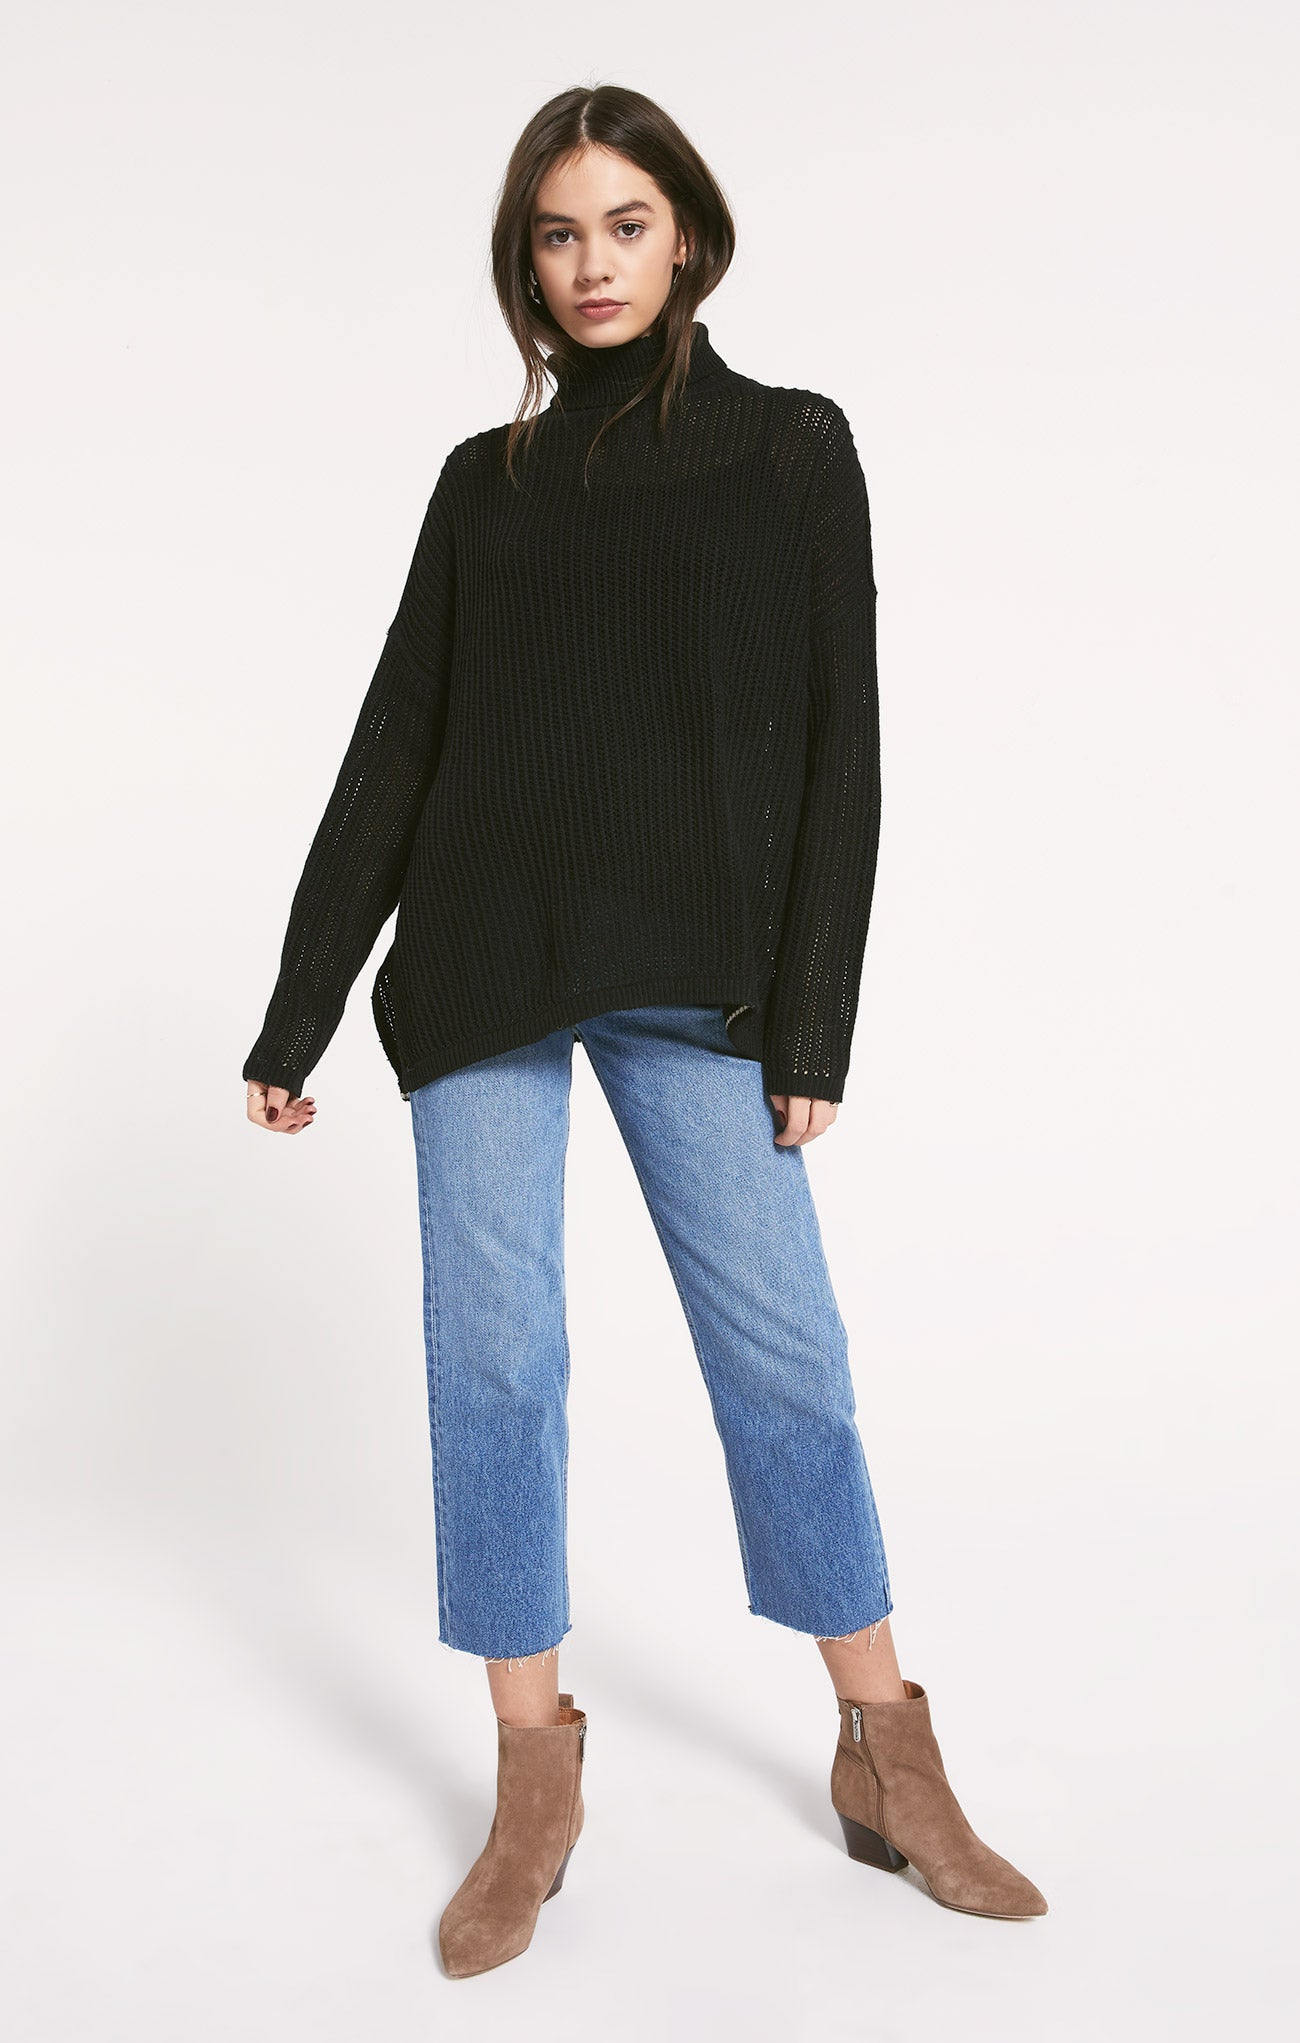 Sweaters Oxford Sweater by Rag Poets Oxford Sweater by Rag Poets